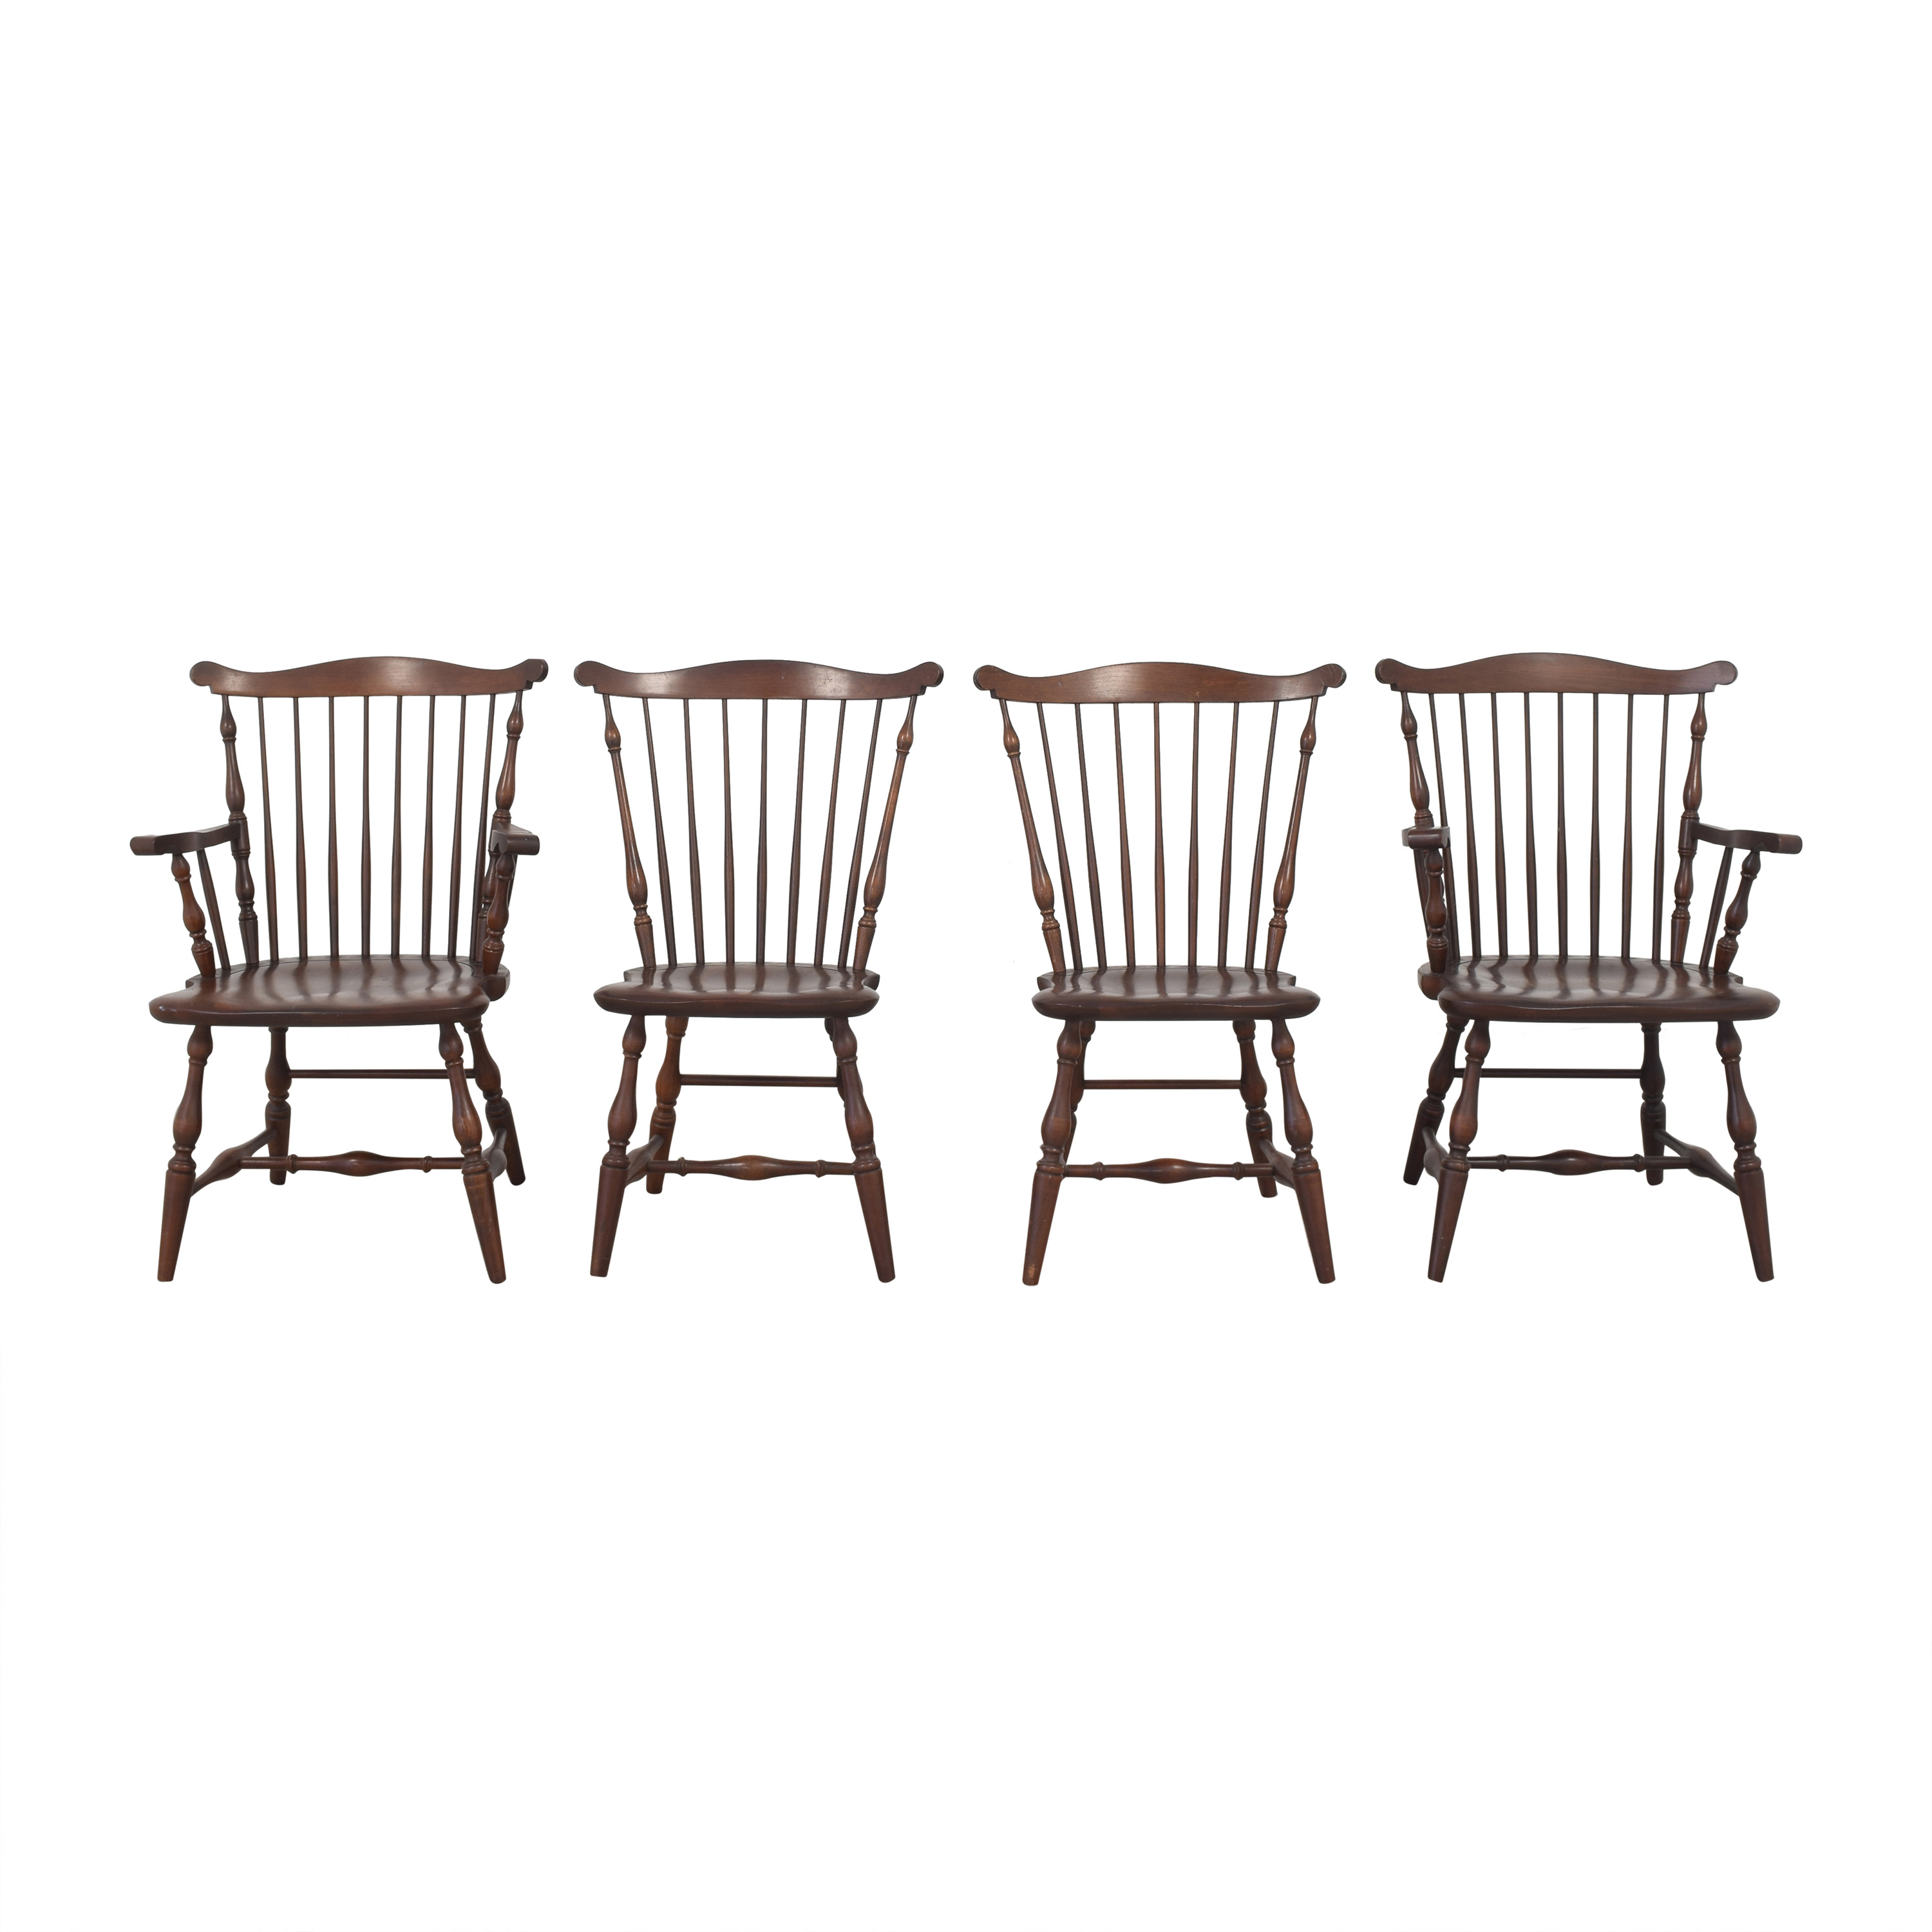 buy Hitchcock Windsor Style Dining Chairs Hitchcock Dining Chairs